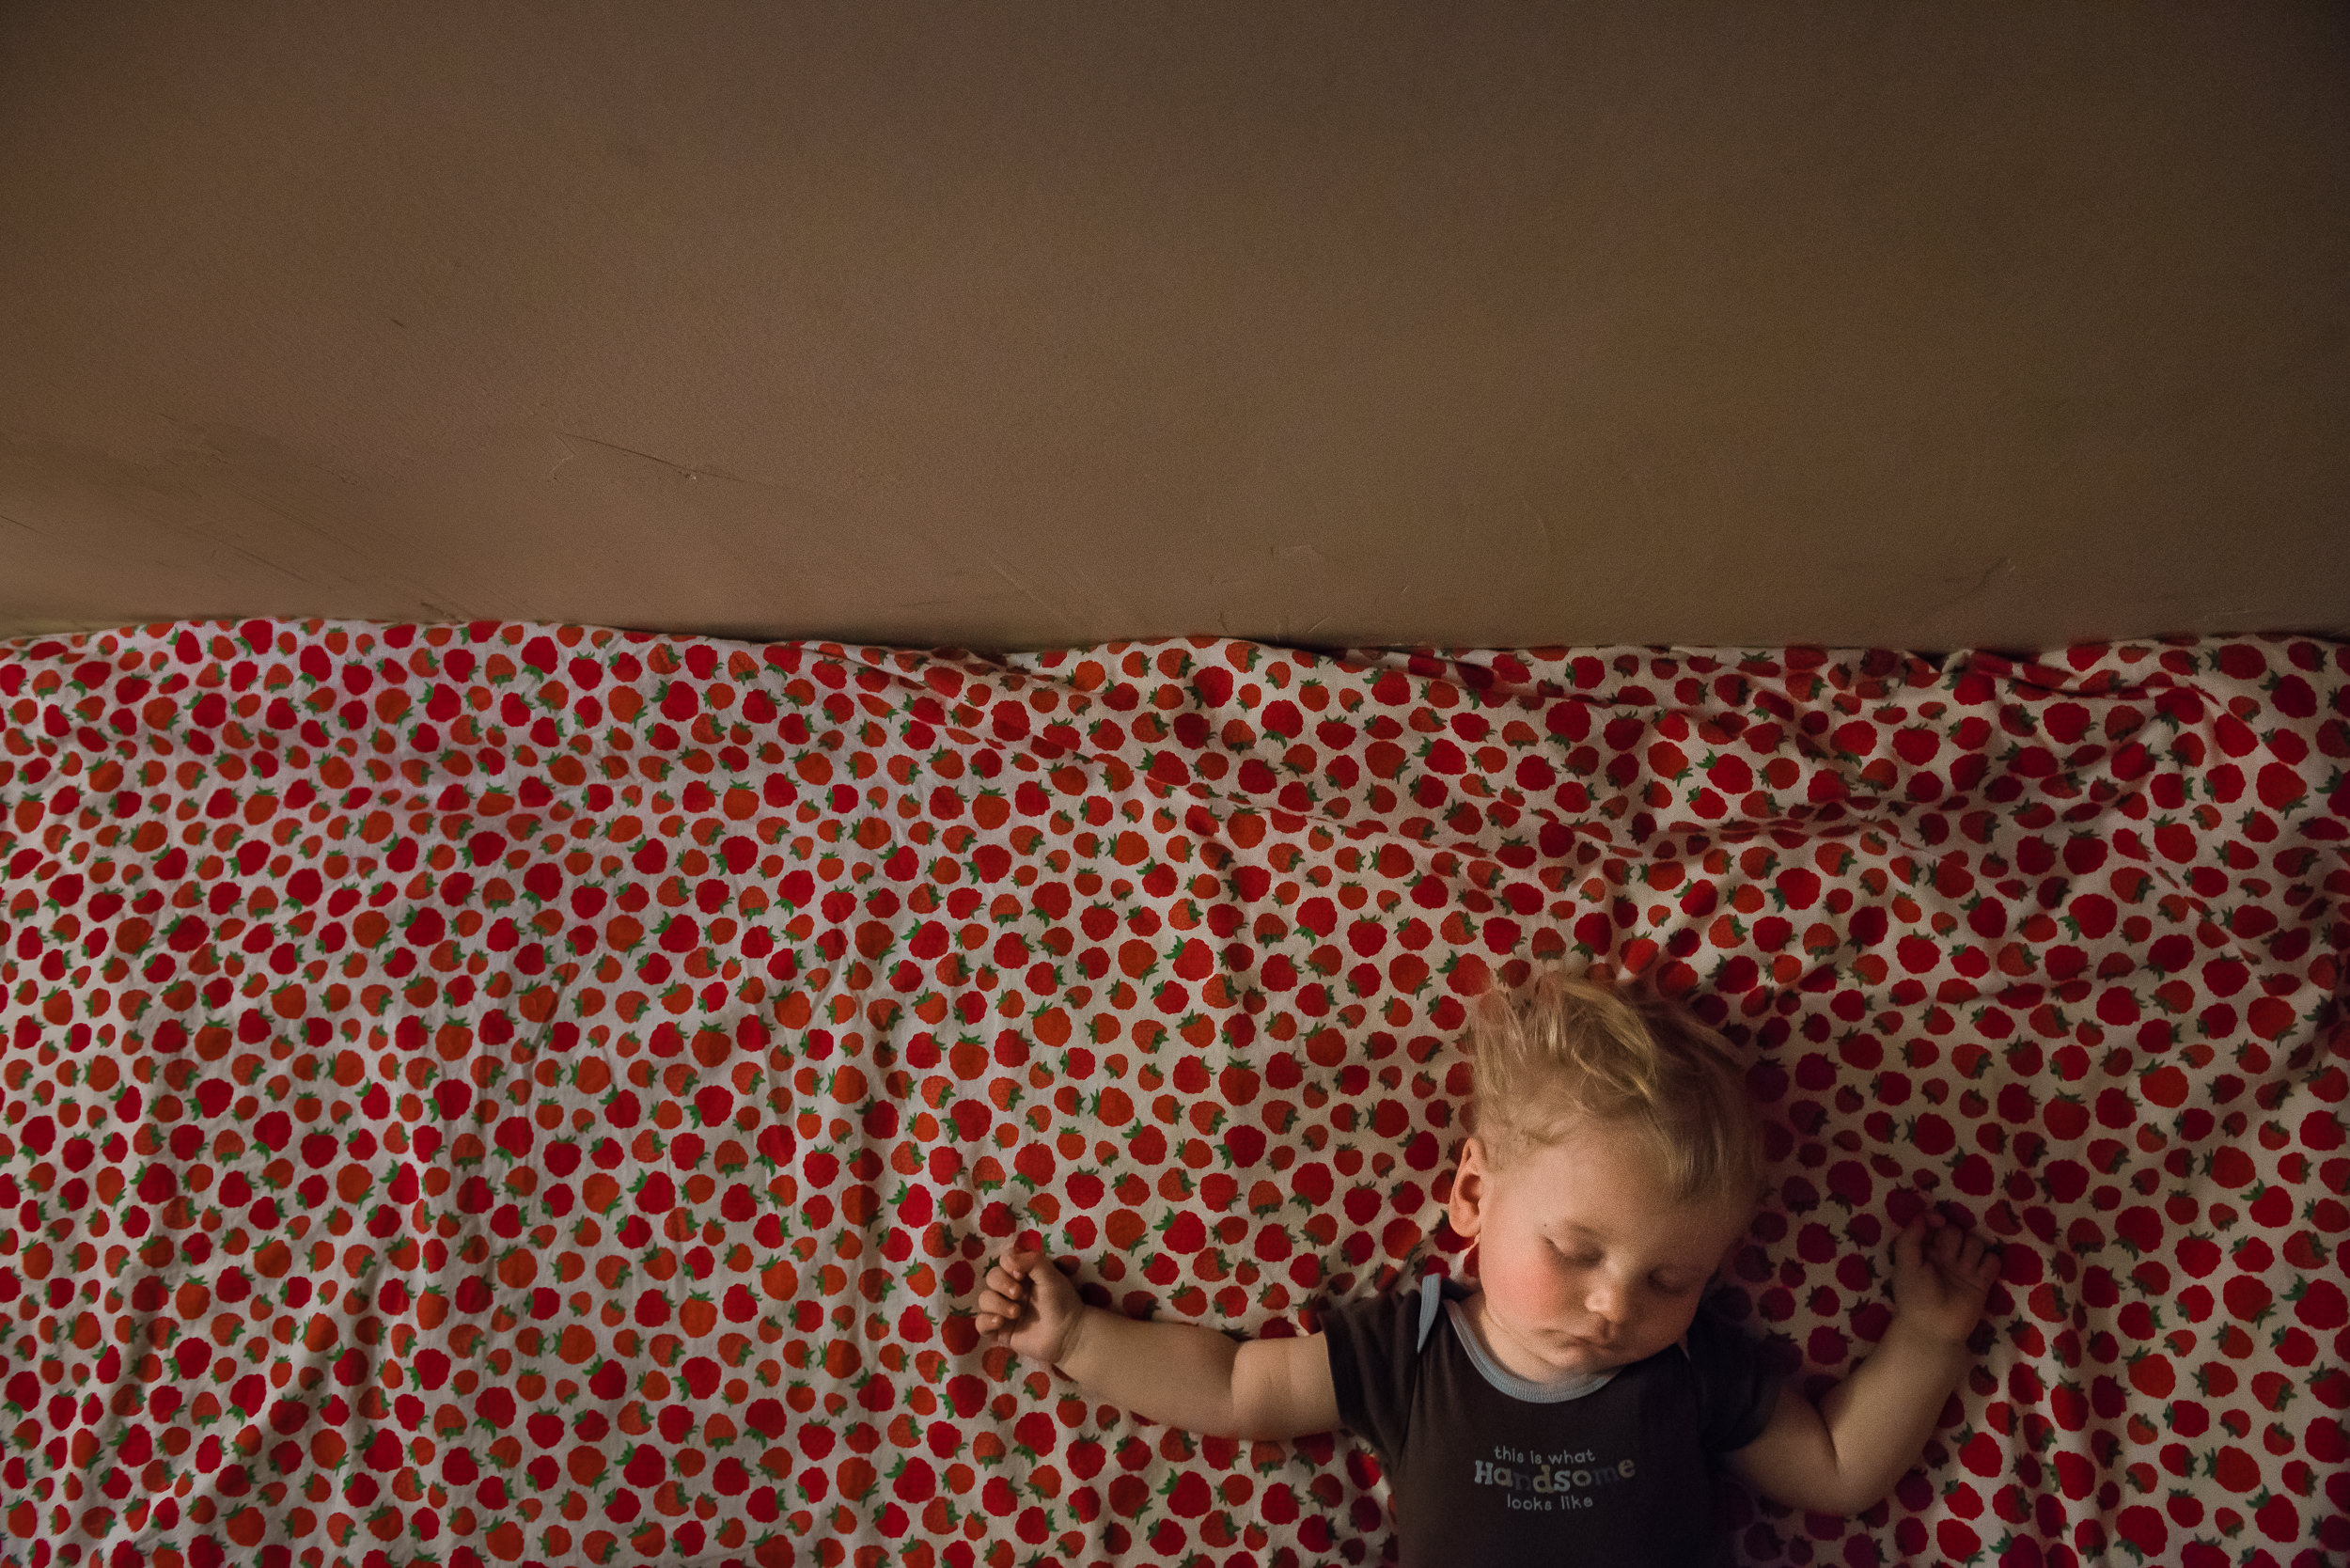 Blog - The Pen & Camera - Gratitude Journal, Inspirational, Friendship, Writing, Motherhood, Denver, Colorado - Molly Rees Photo - Documentary Childhood Photography - boy sleeping on raspberry quilt by M. Menschel